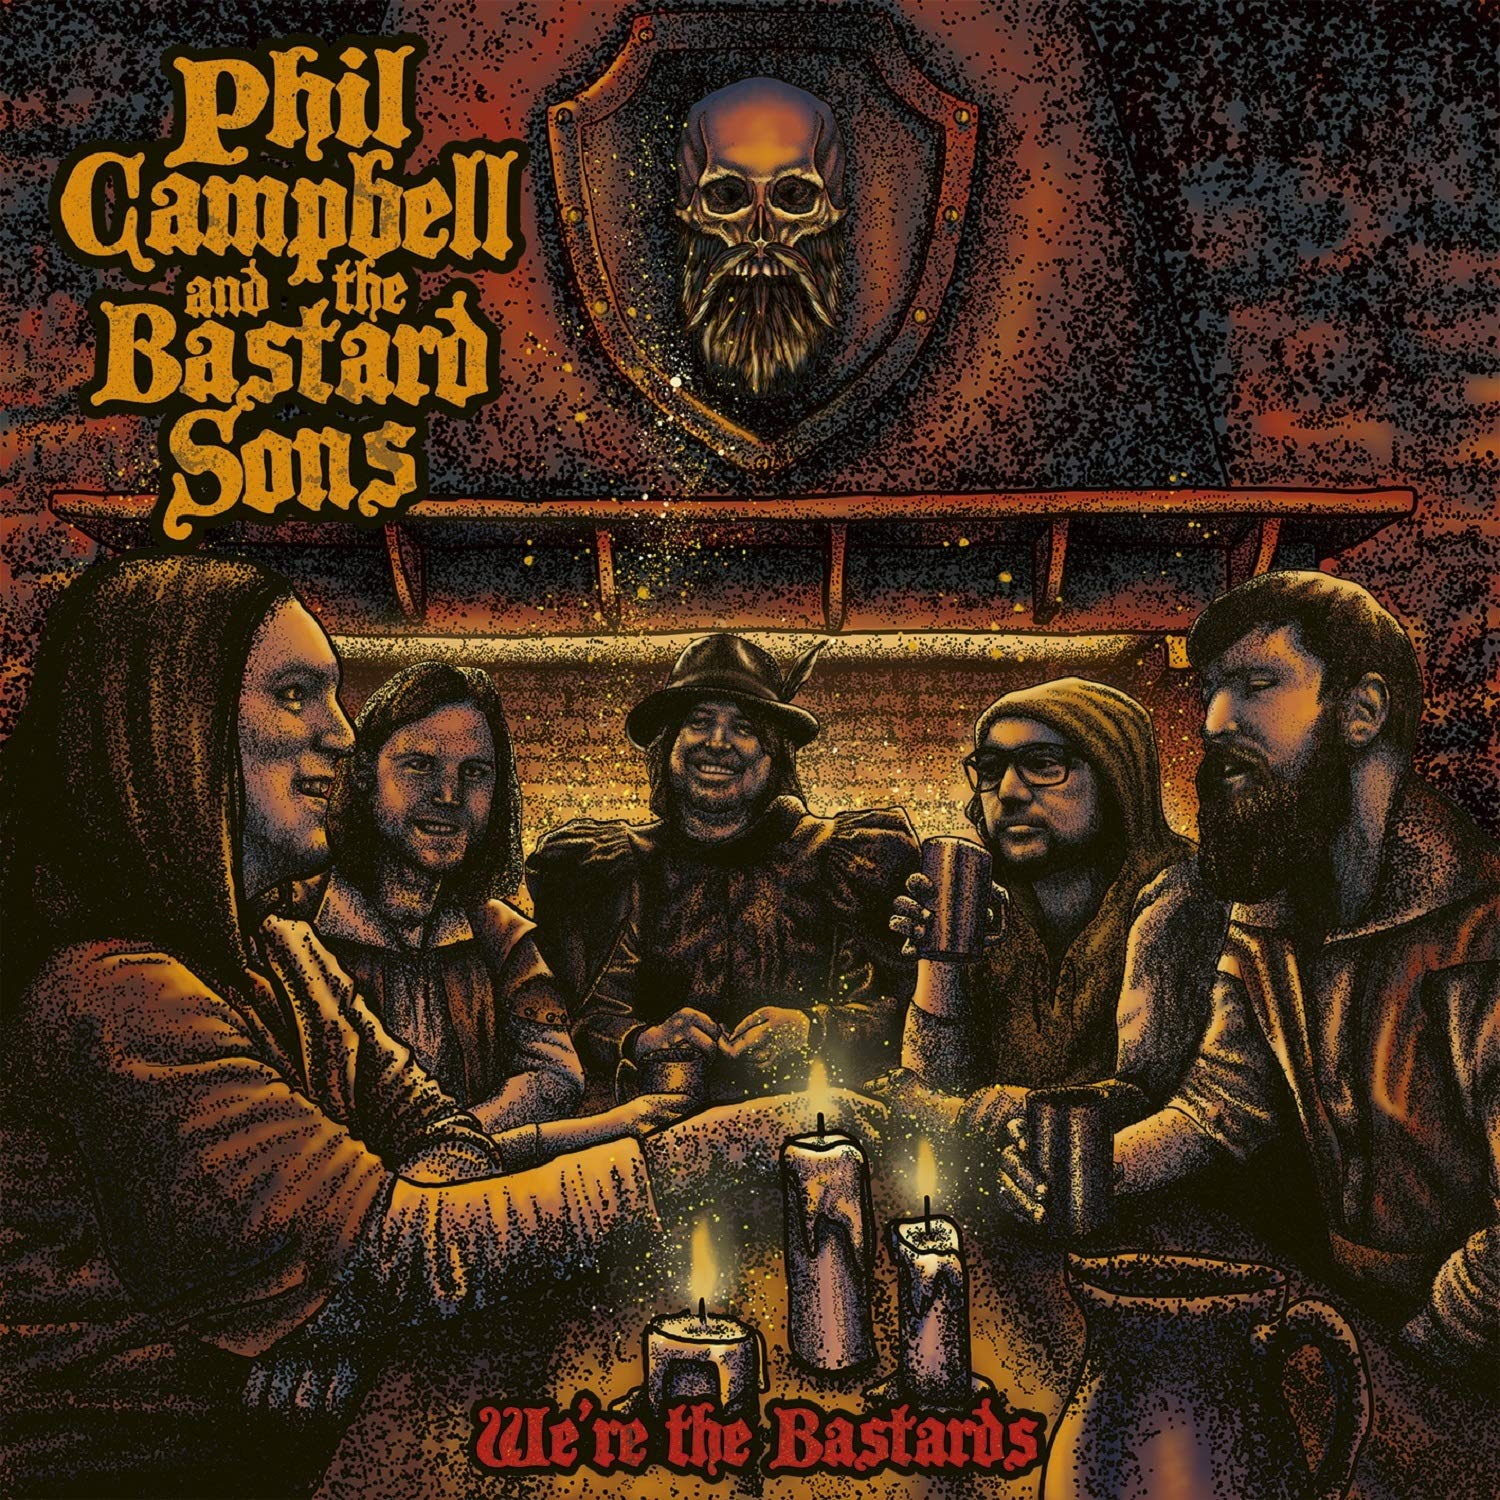 Phil Campbell And The Bastard Sons - We're The Bastards (2020) [FLAC] Download